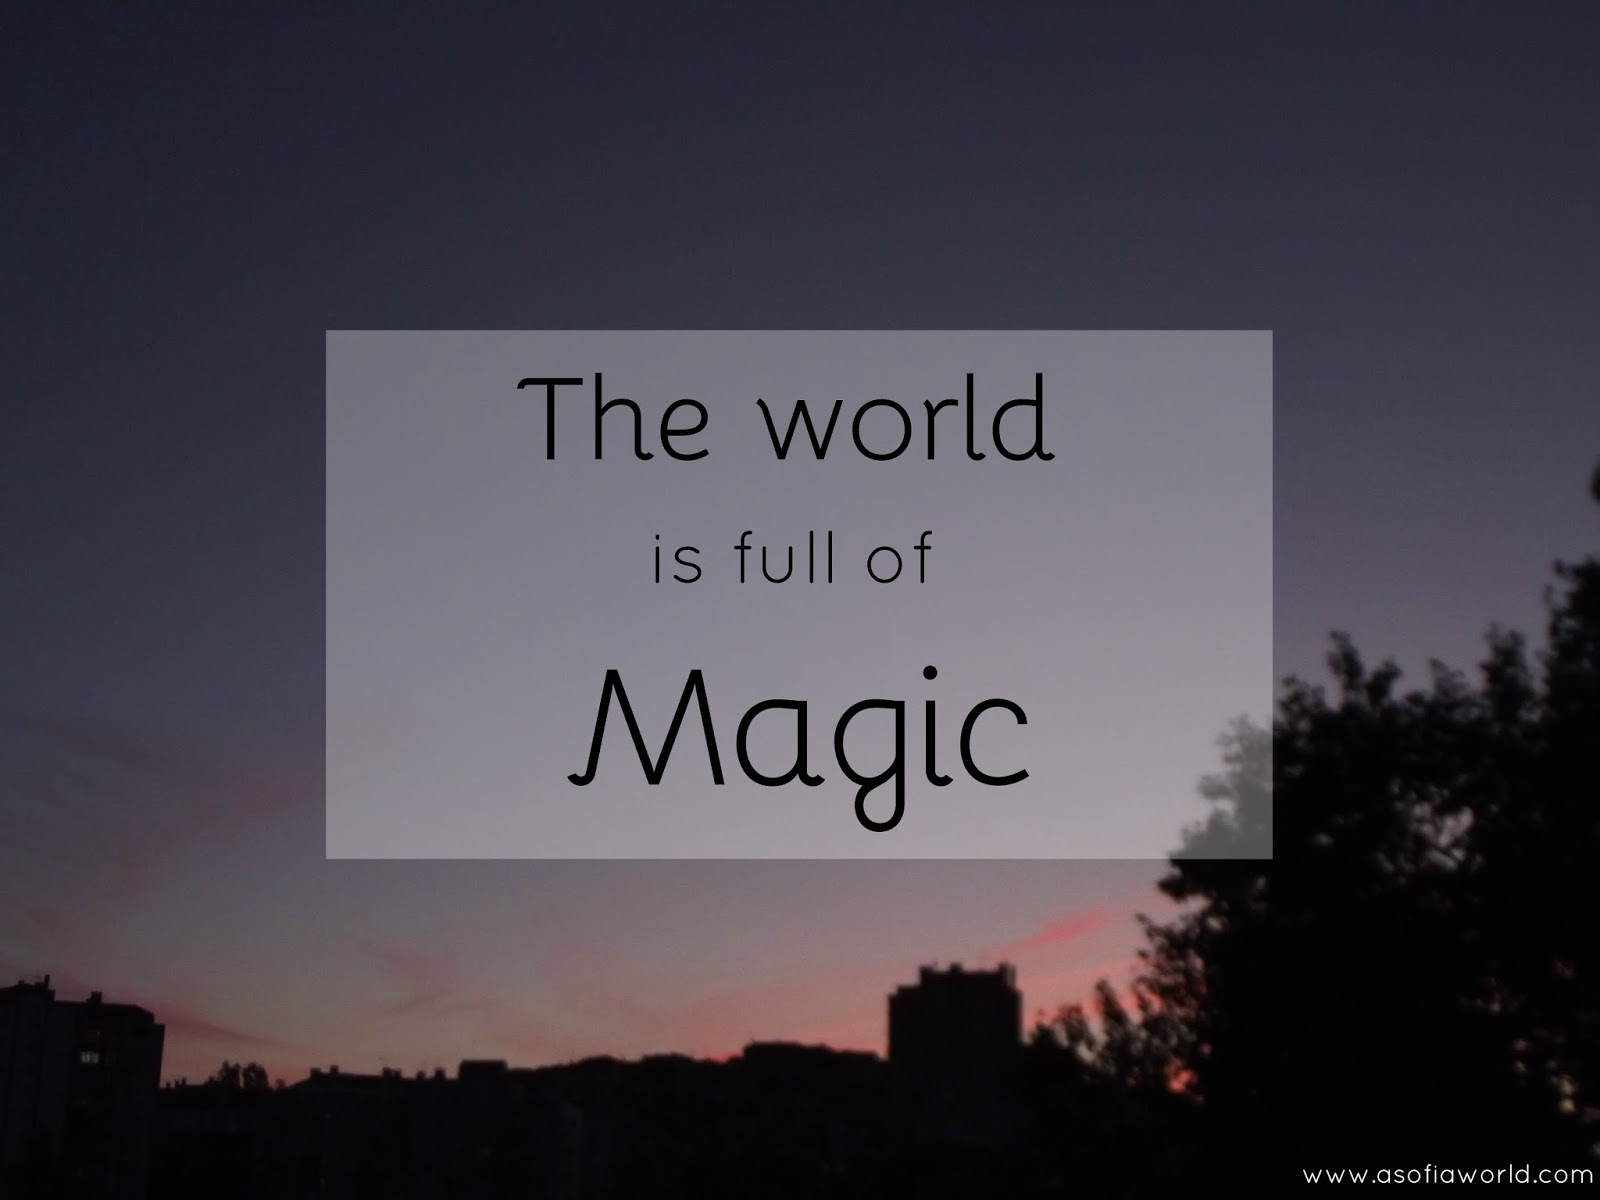 The world is full of magic: One Tree Hill inspiration for another week. www.asofiaworld.com